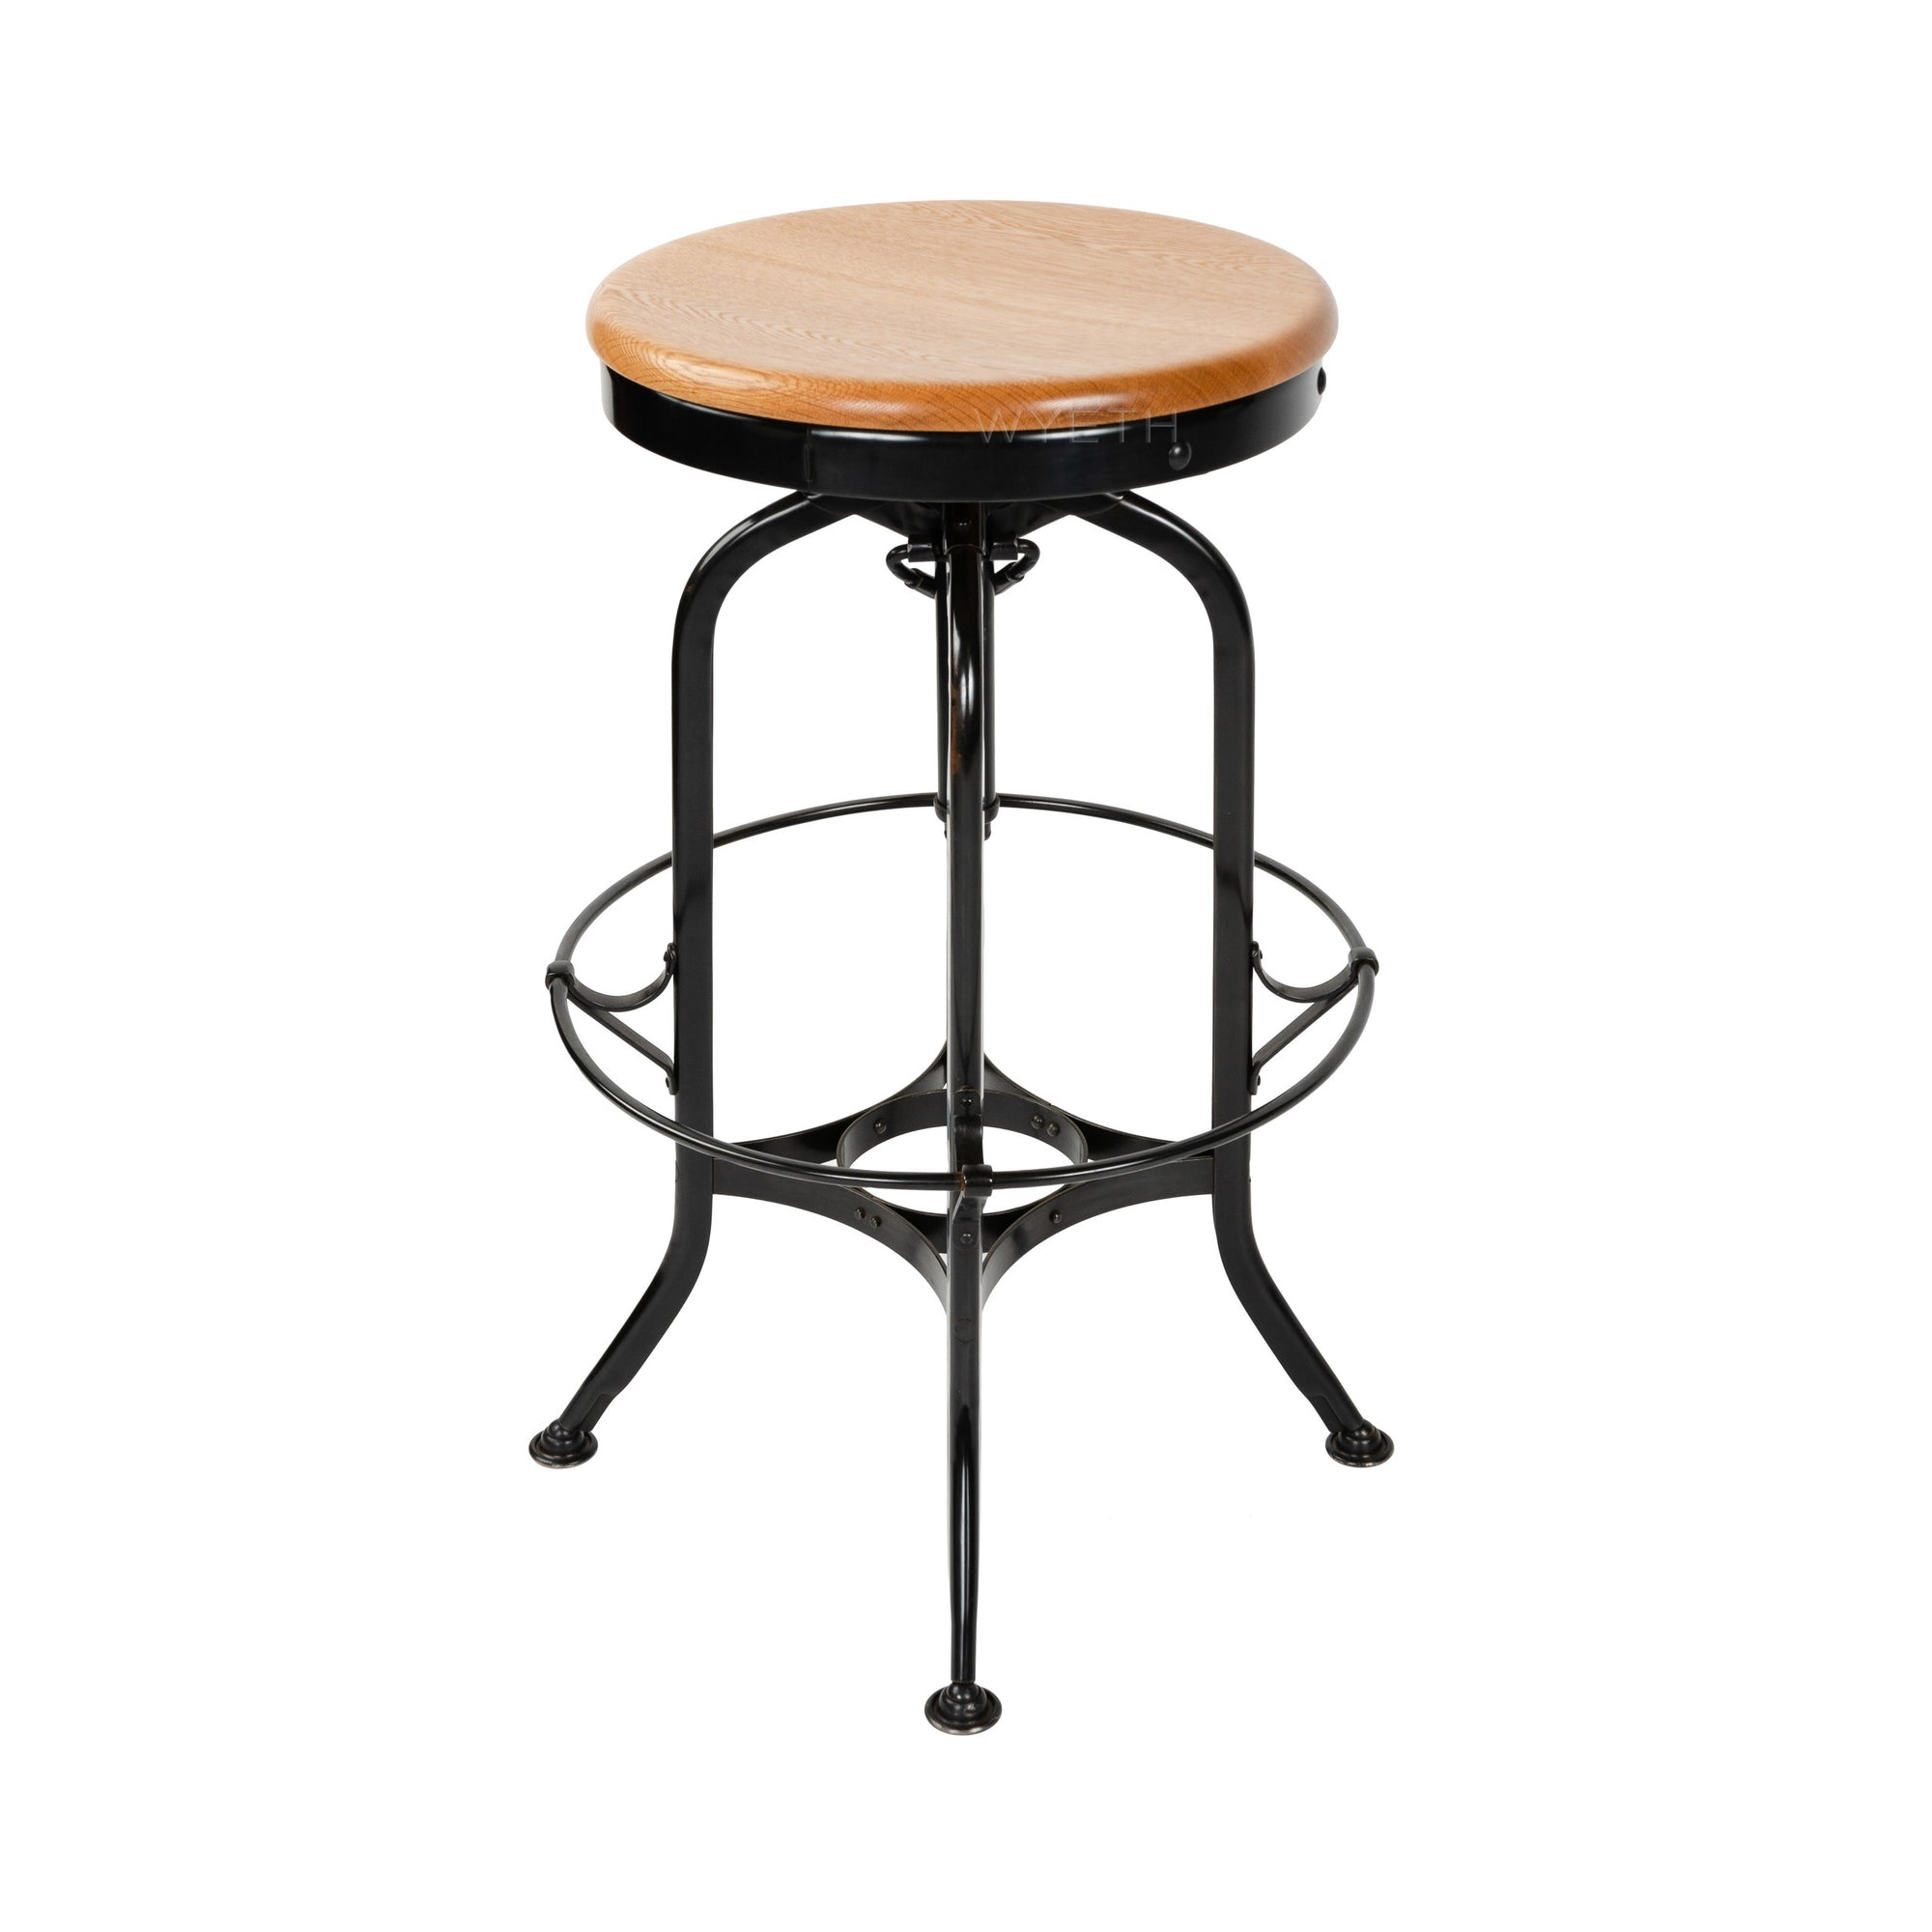 Adjustable-Height Stool - Seating - ----- WYETH